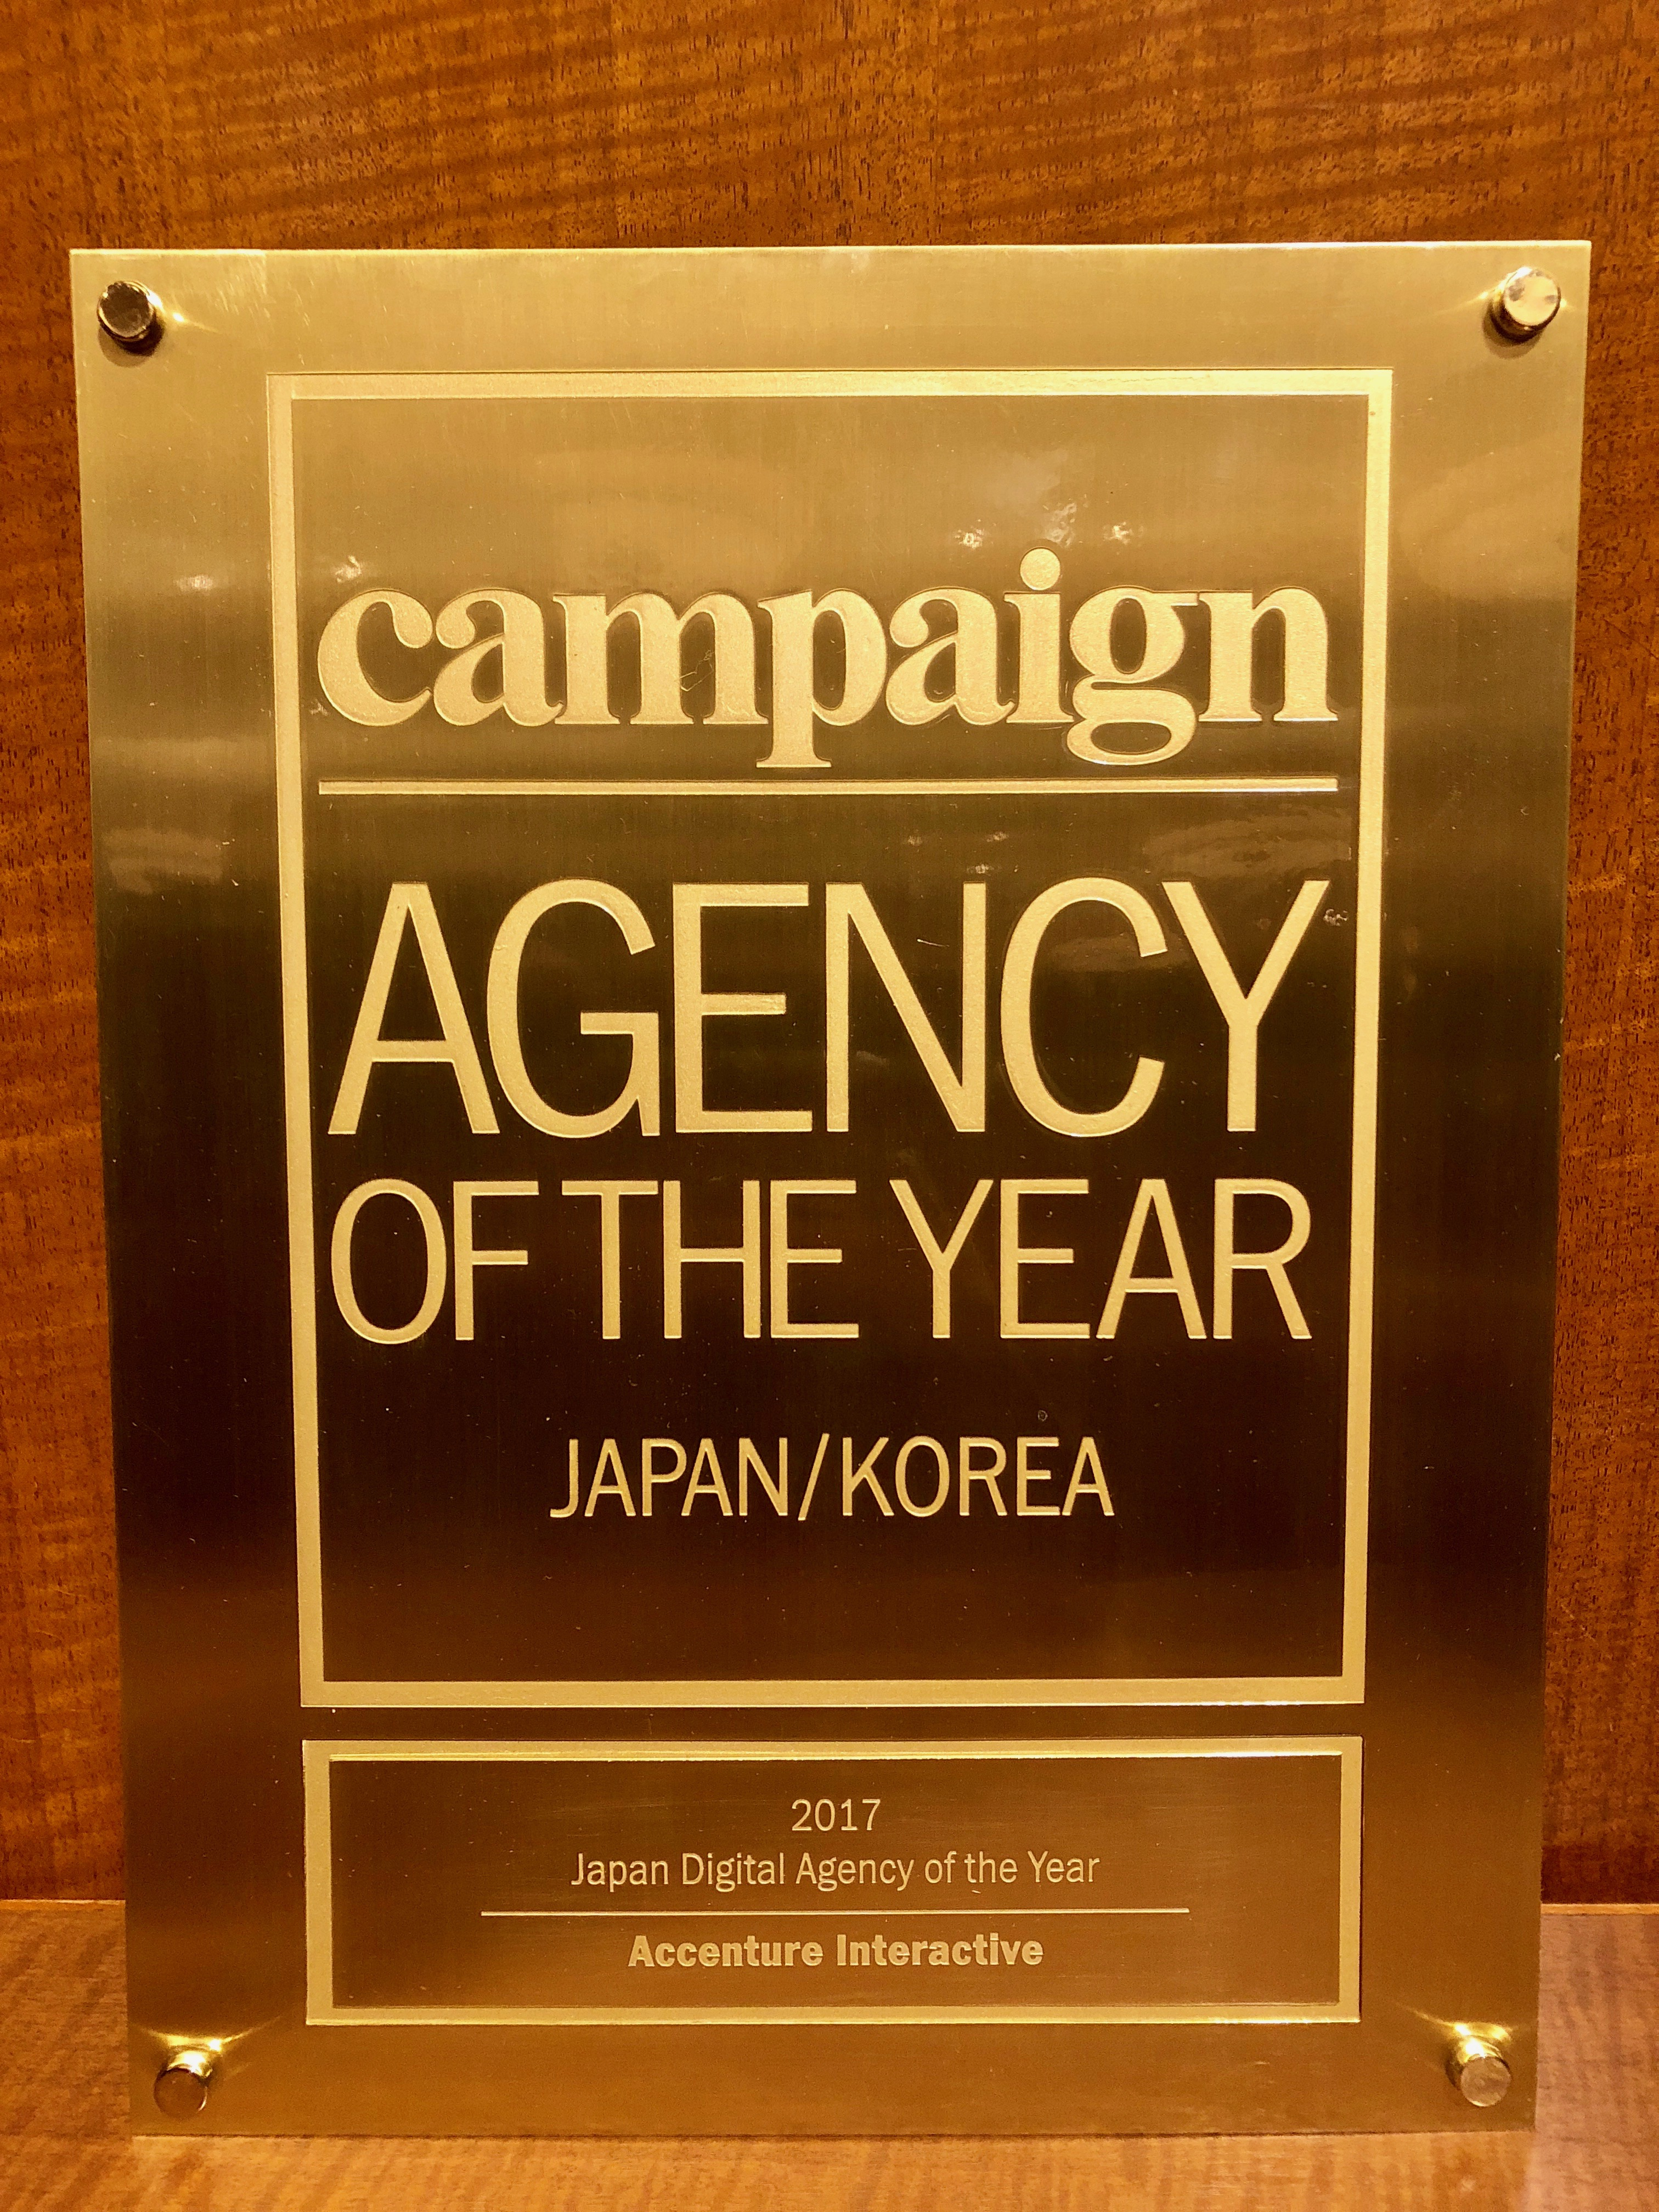 Campaign | AGENCY OF THE YEAR